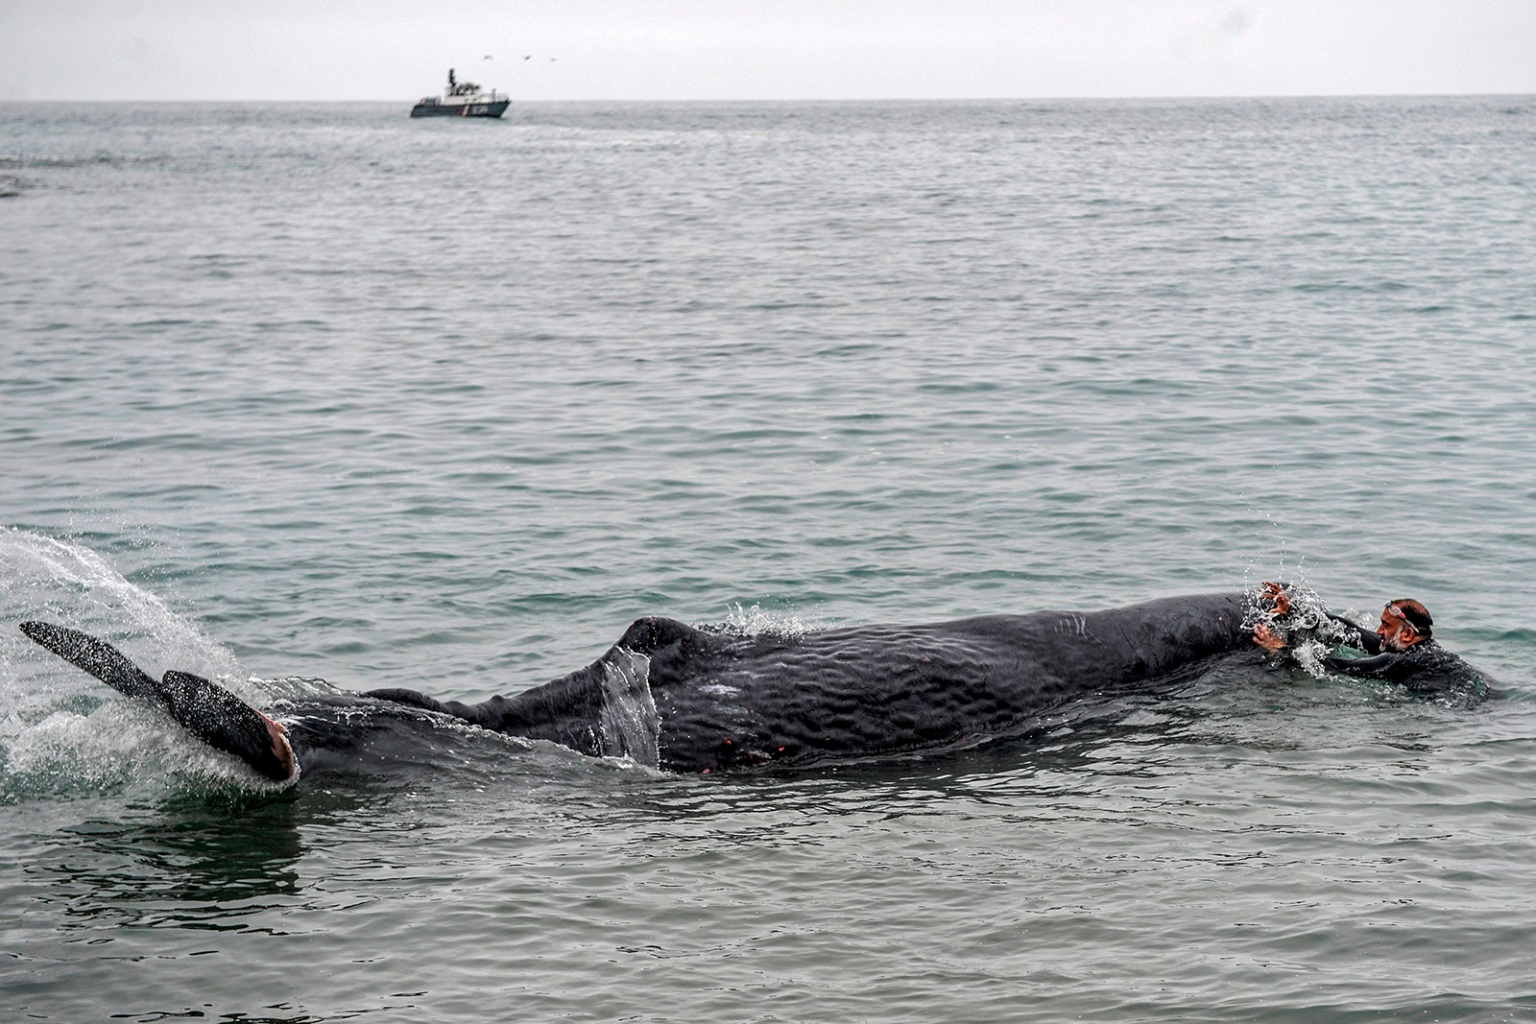 A man helps a sperm whale stranded at San Bartolo beach, in Lima, on Aug. 20. ERNESTO BENAVIDES/AFP/Getty Images